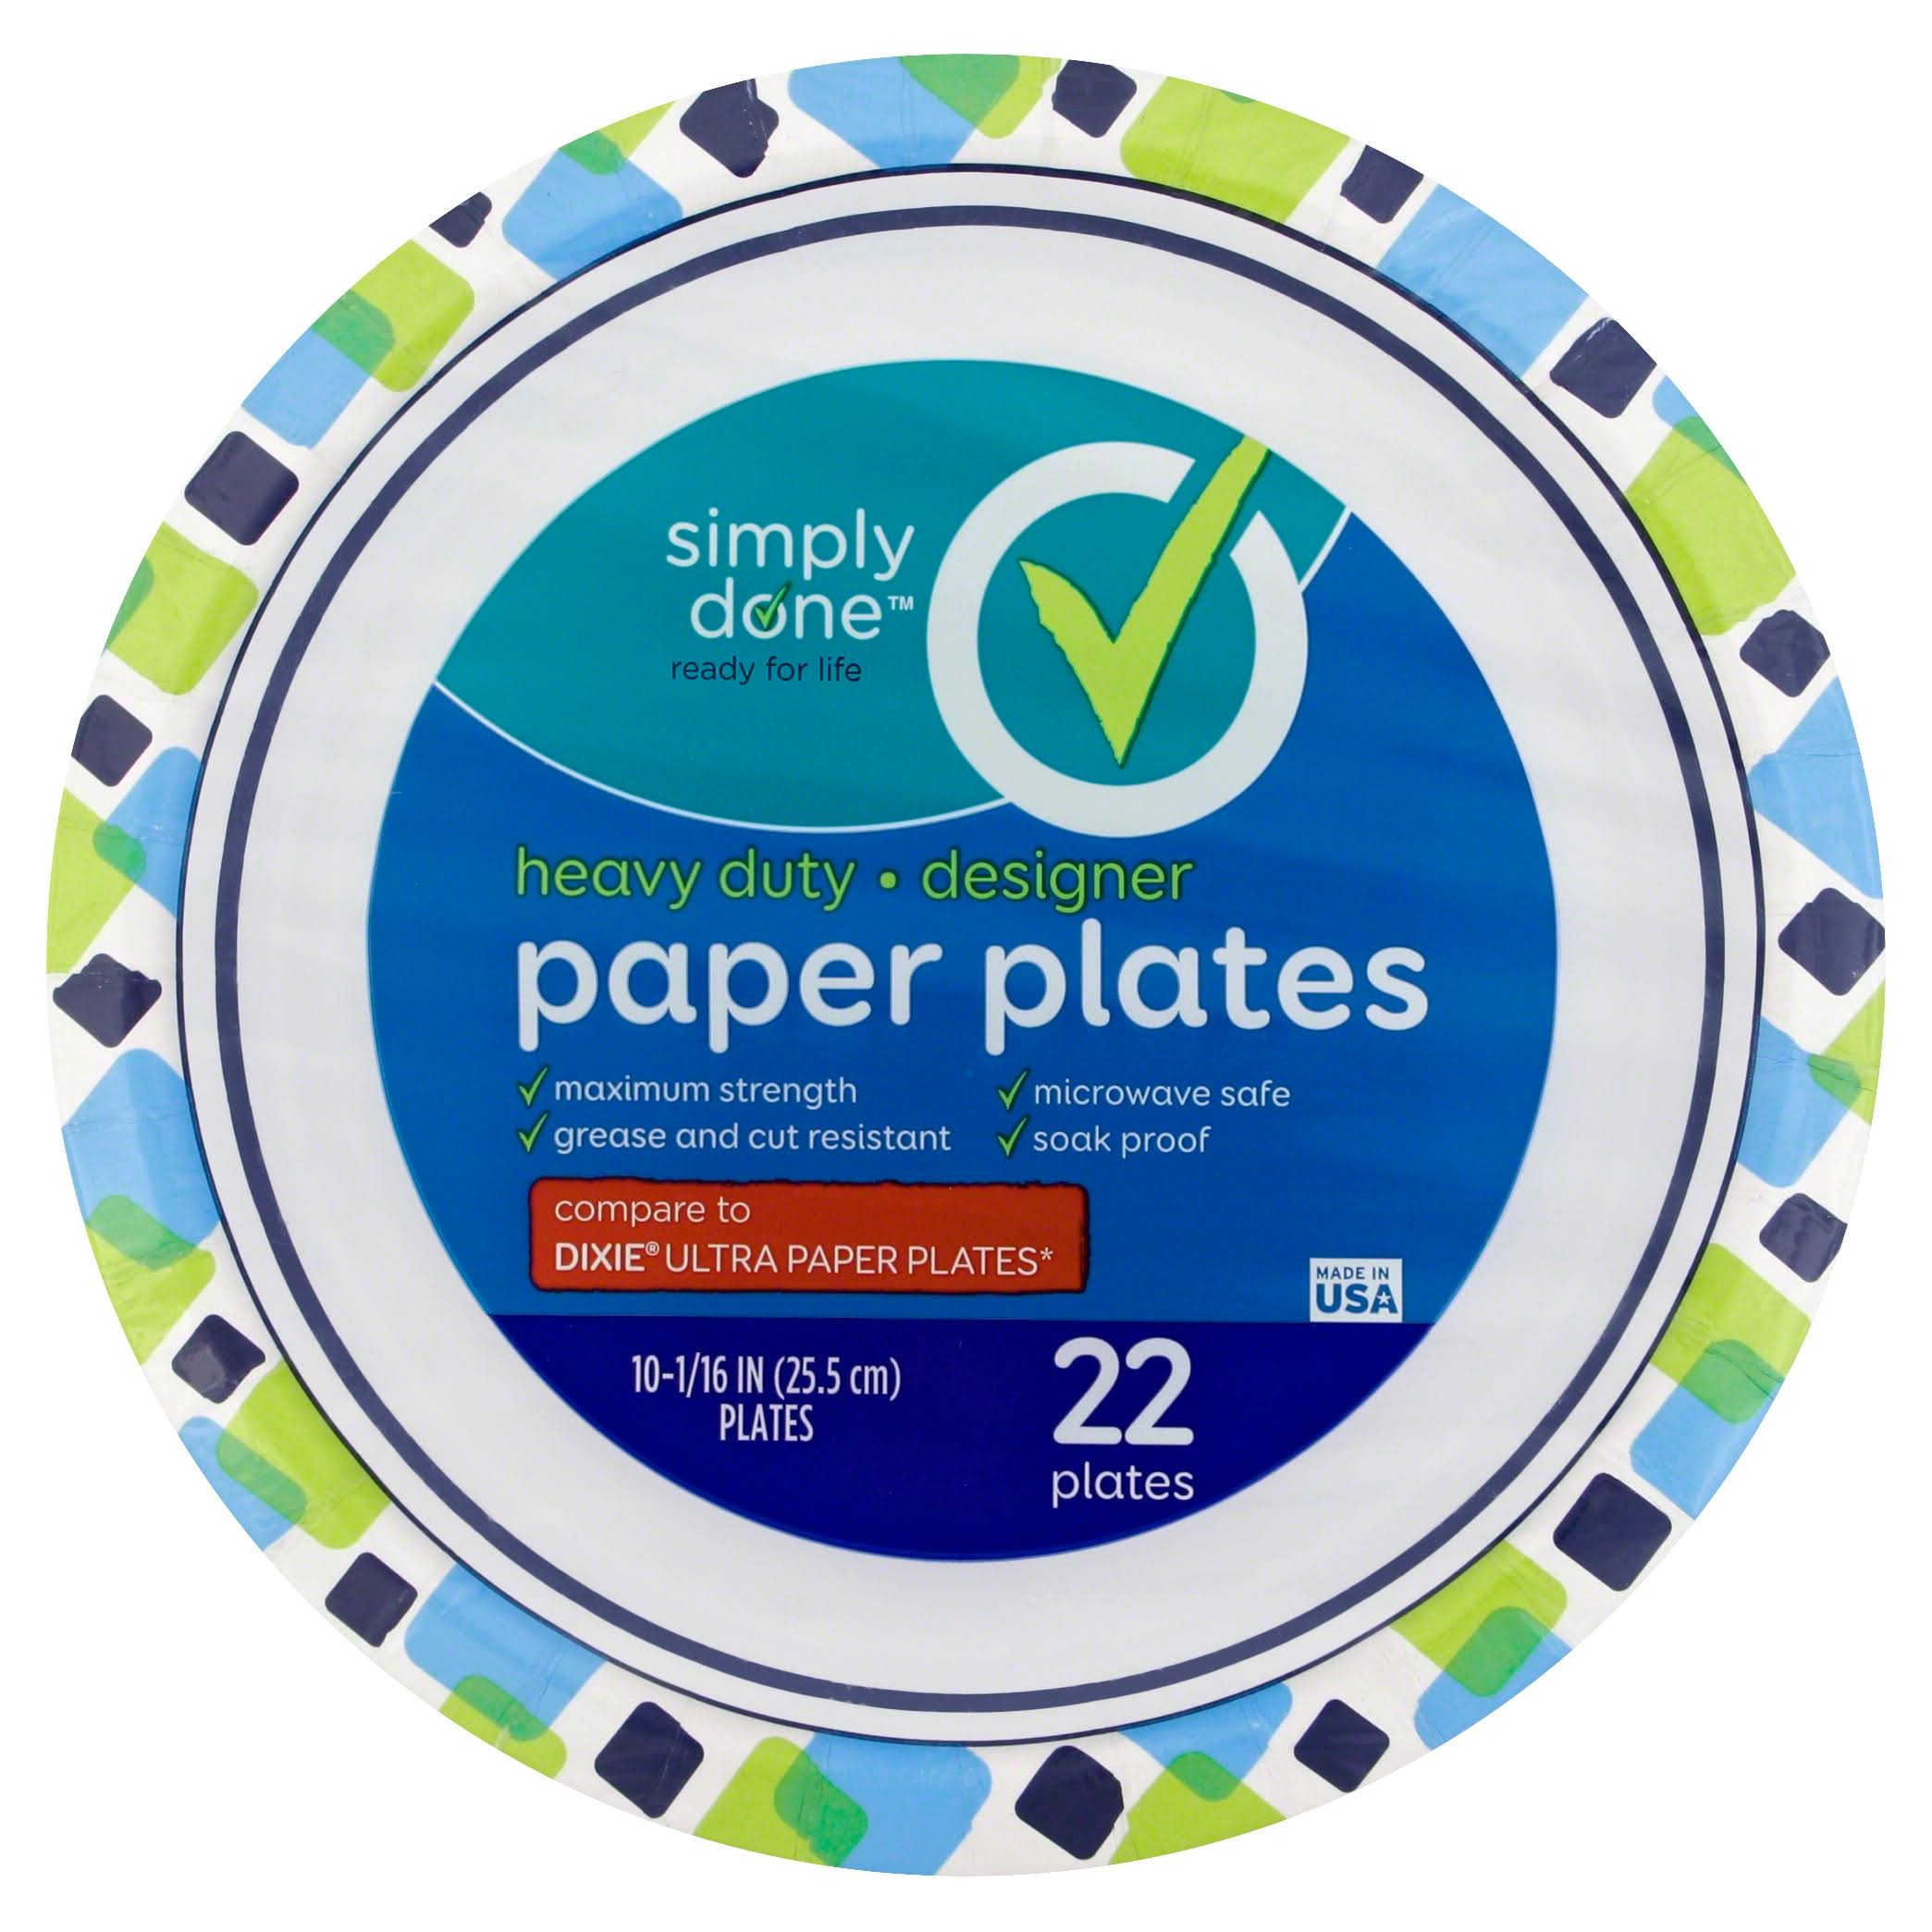 Simply Done Paper Plates, Designer, Heavy Duty, 10-1/16 Inch - 22 plates